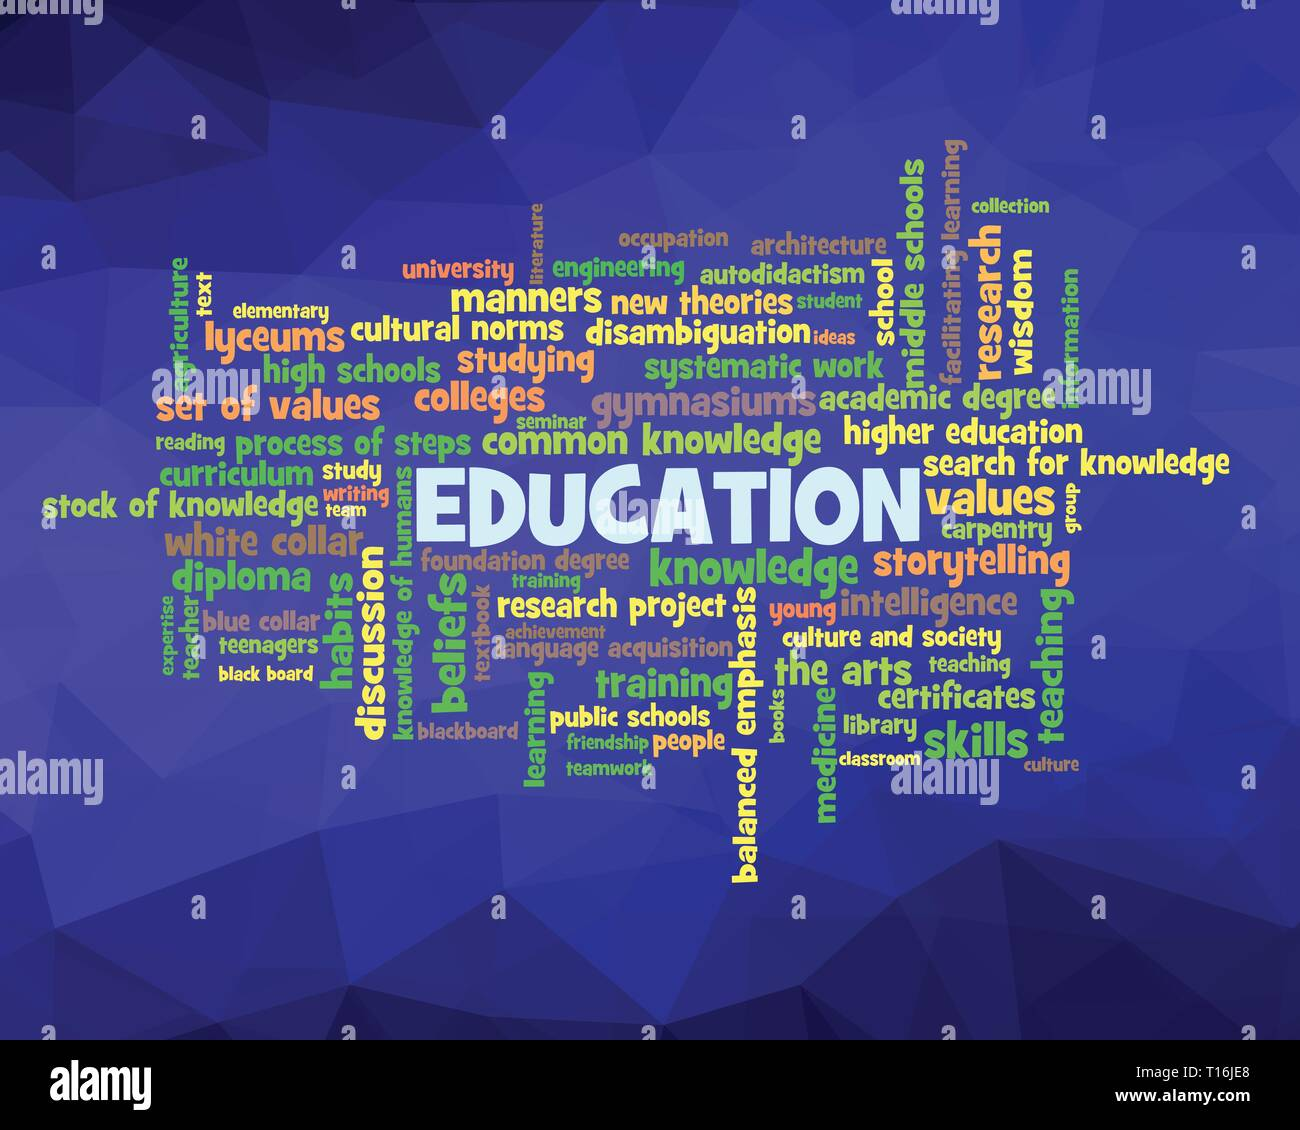 Word cloud, concept illustration shows words related to knowledge, learning, education, wisdom and similar concepts, on low poly background. Vector ES - Stock Image